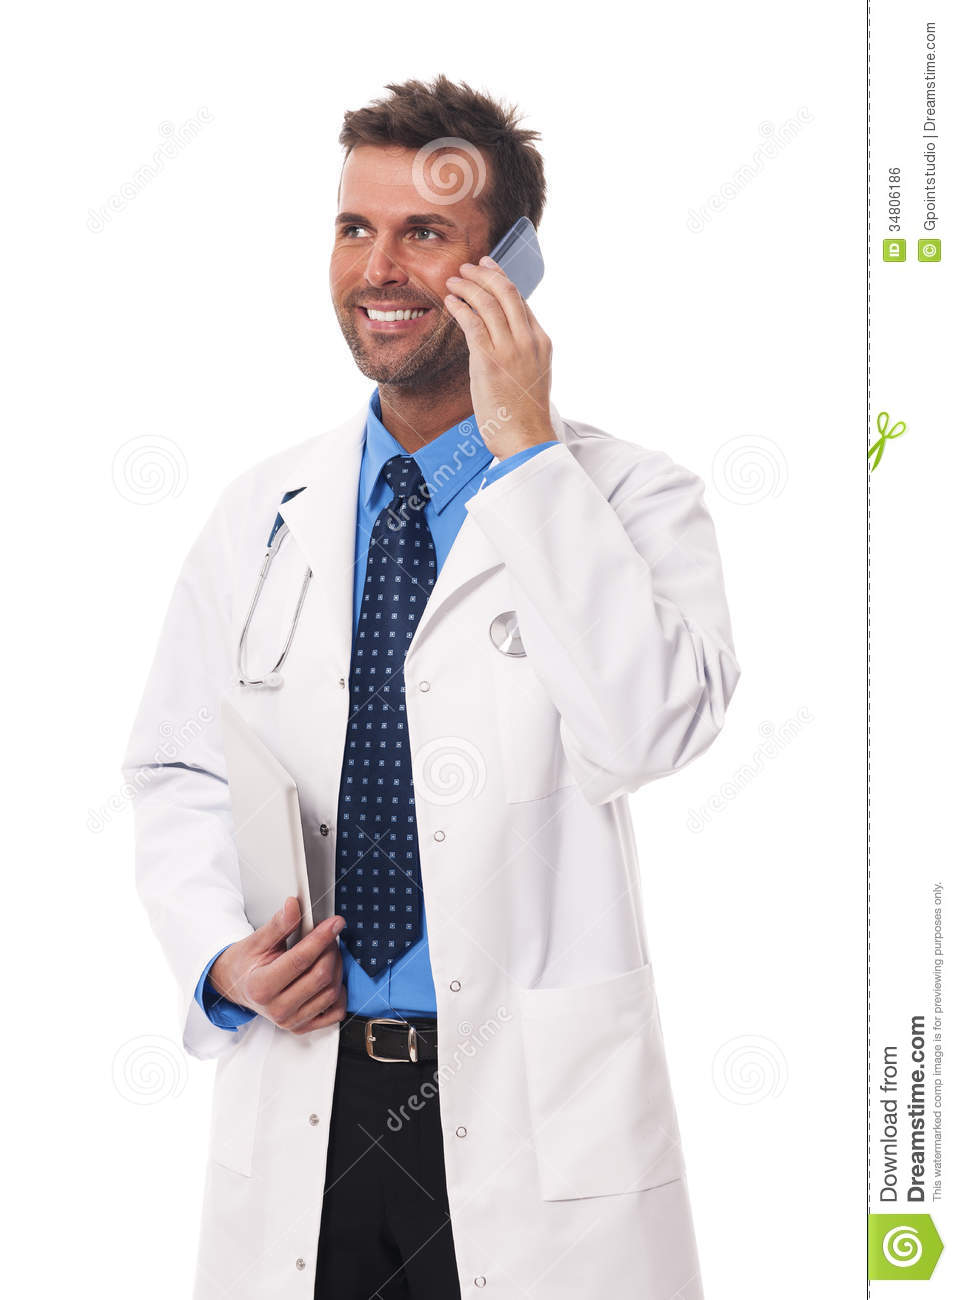 Busy Doctor Royalty Free Stock Image - Image: 34806186